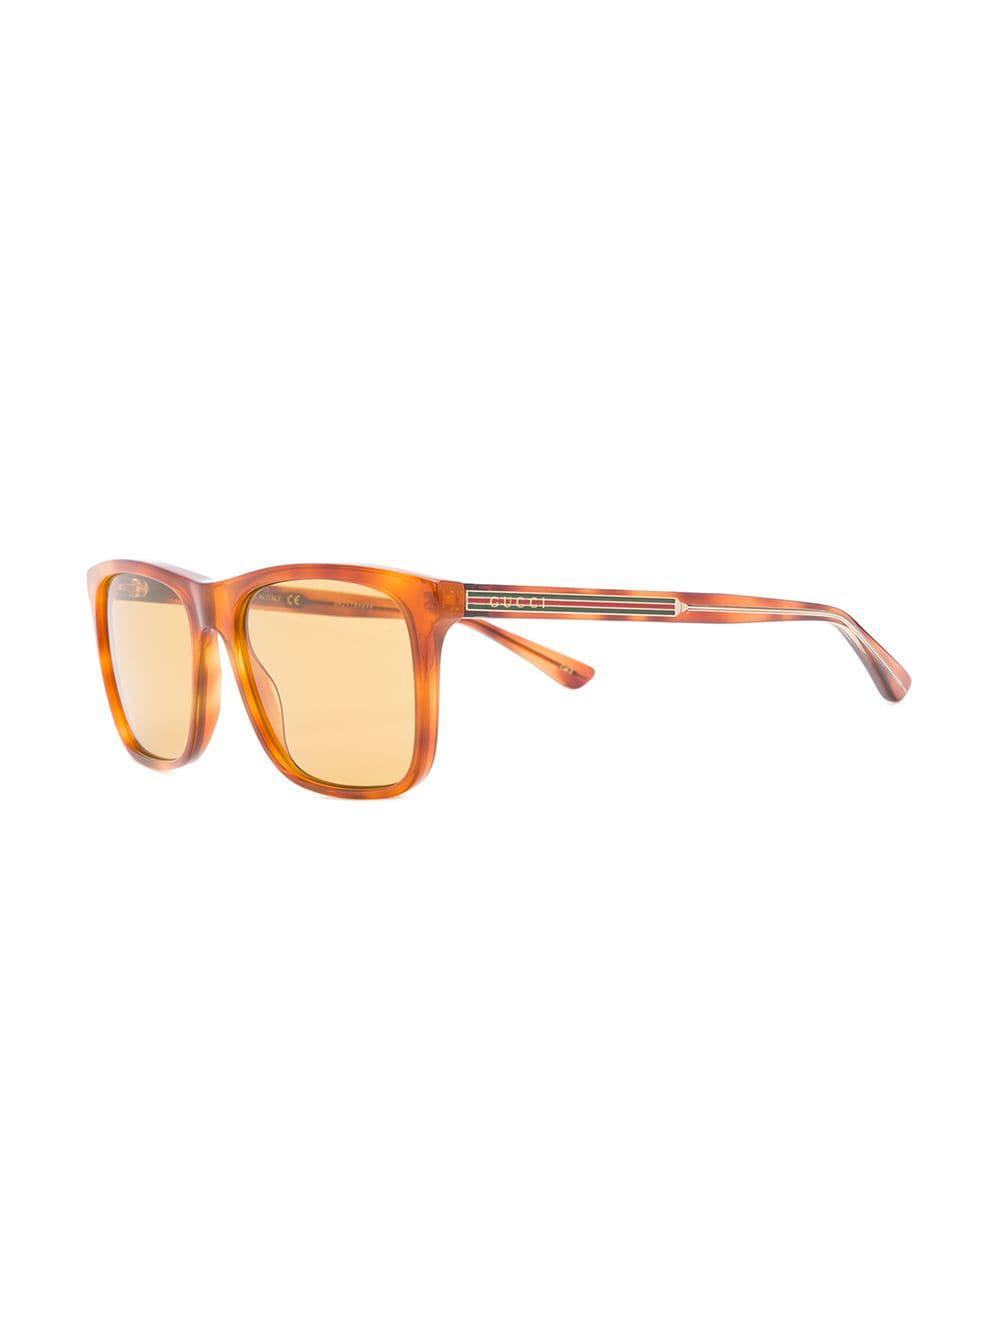 c63f152ae5a Gucci - Brown Rectangle Frame Sunglasses for Men - Lyst. View fullscreen